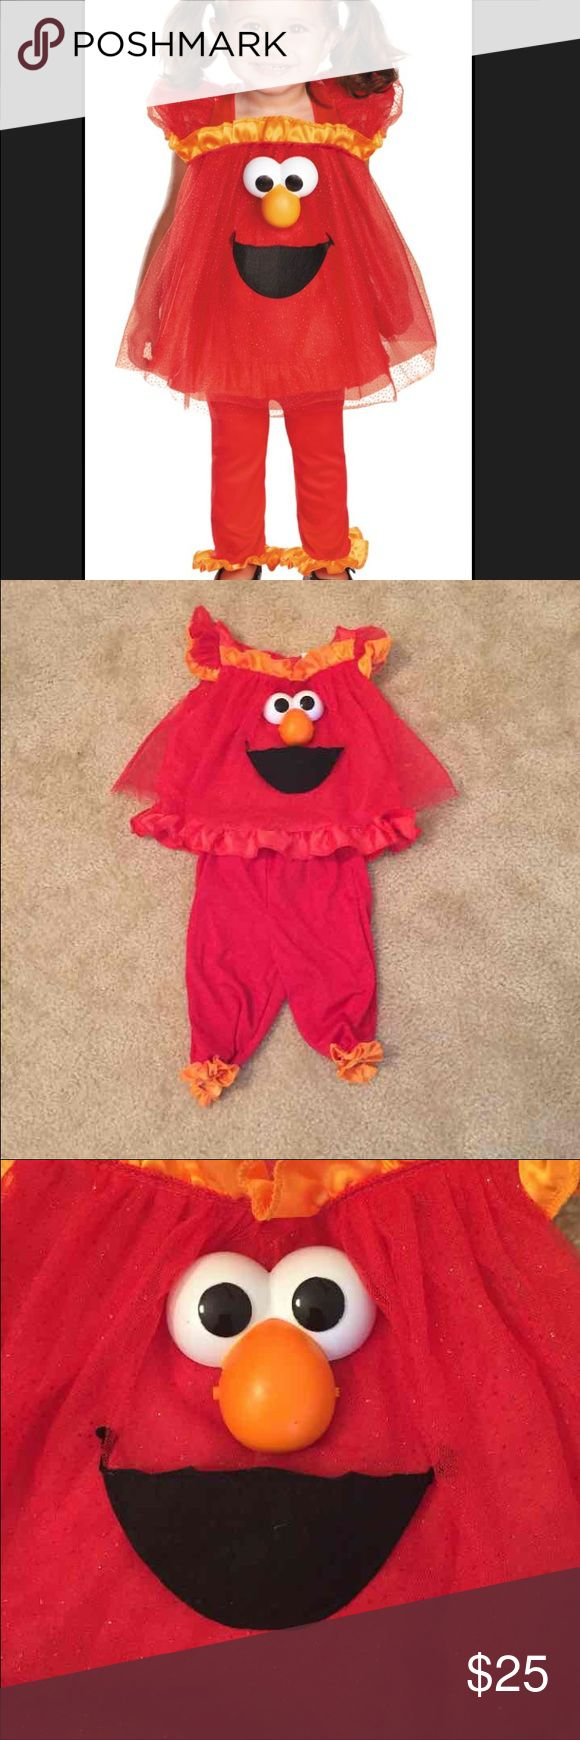 Baby girl light up Elmo costume Adorable baby girl light up eyes Elmo costume. Little black dot on nose as you can see in third picture. Batteries included .12-18 months worn once Sesame street  Costumes